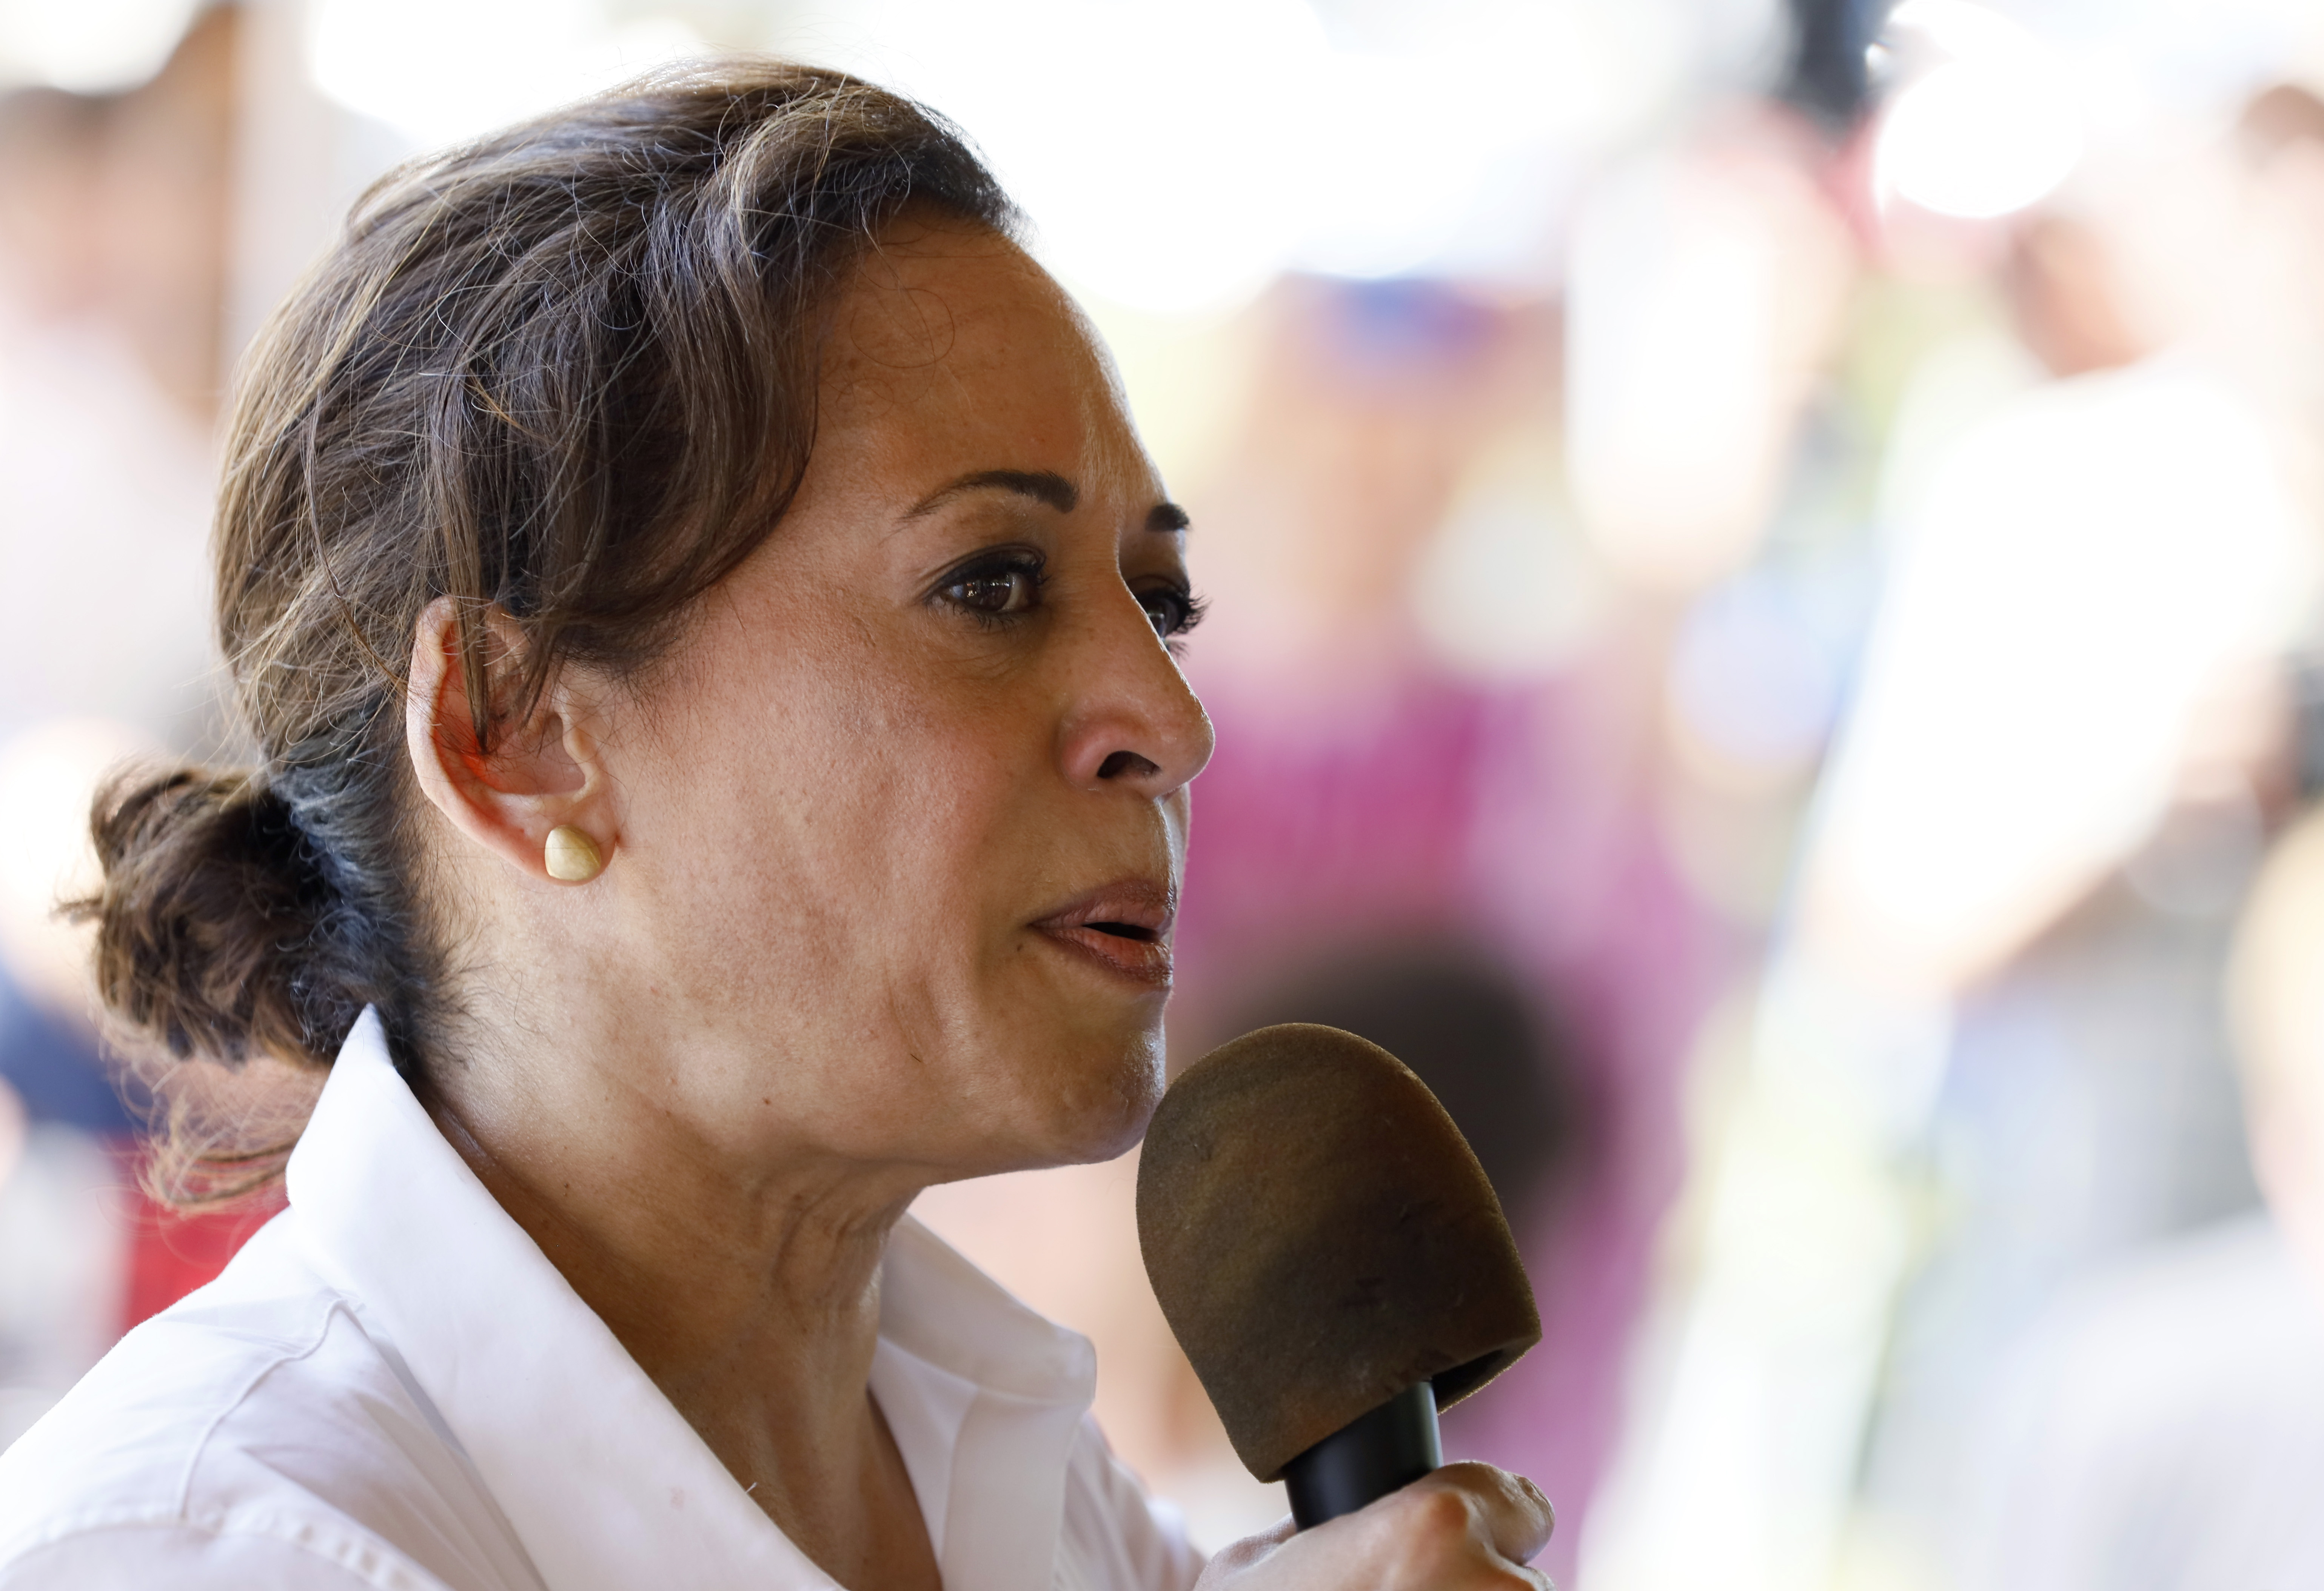 Harris says busing should be considered, not mandated